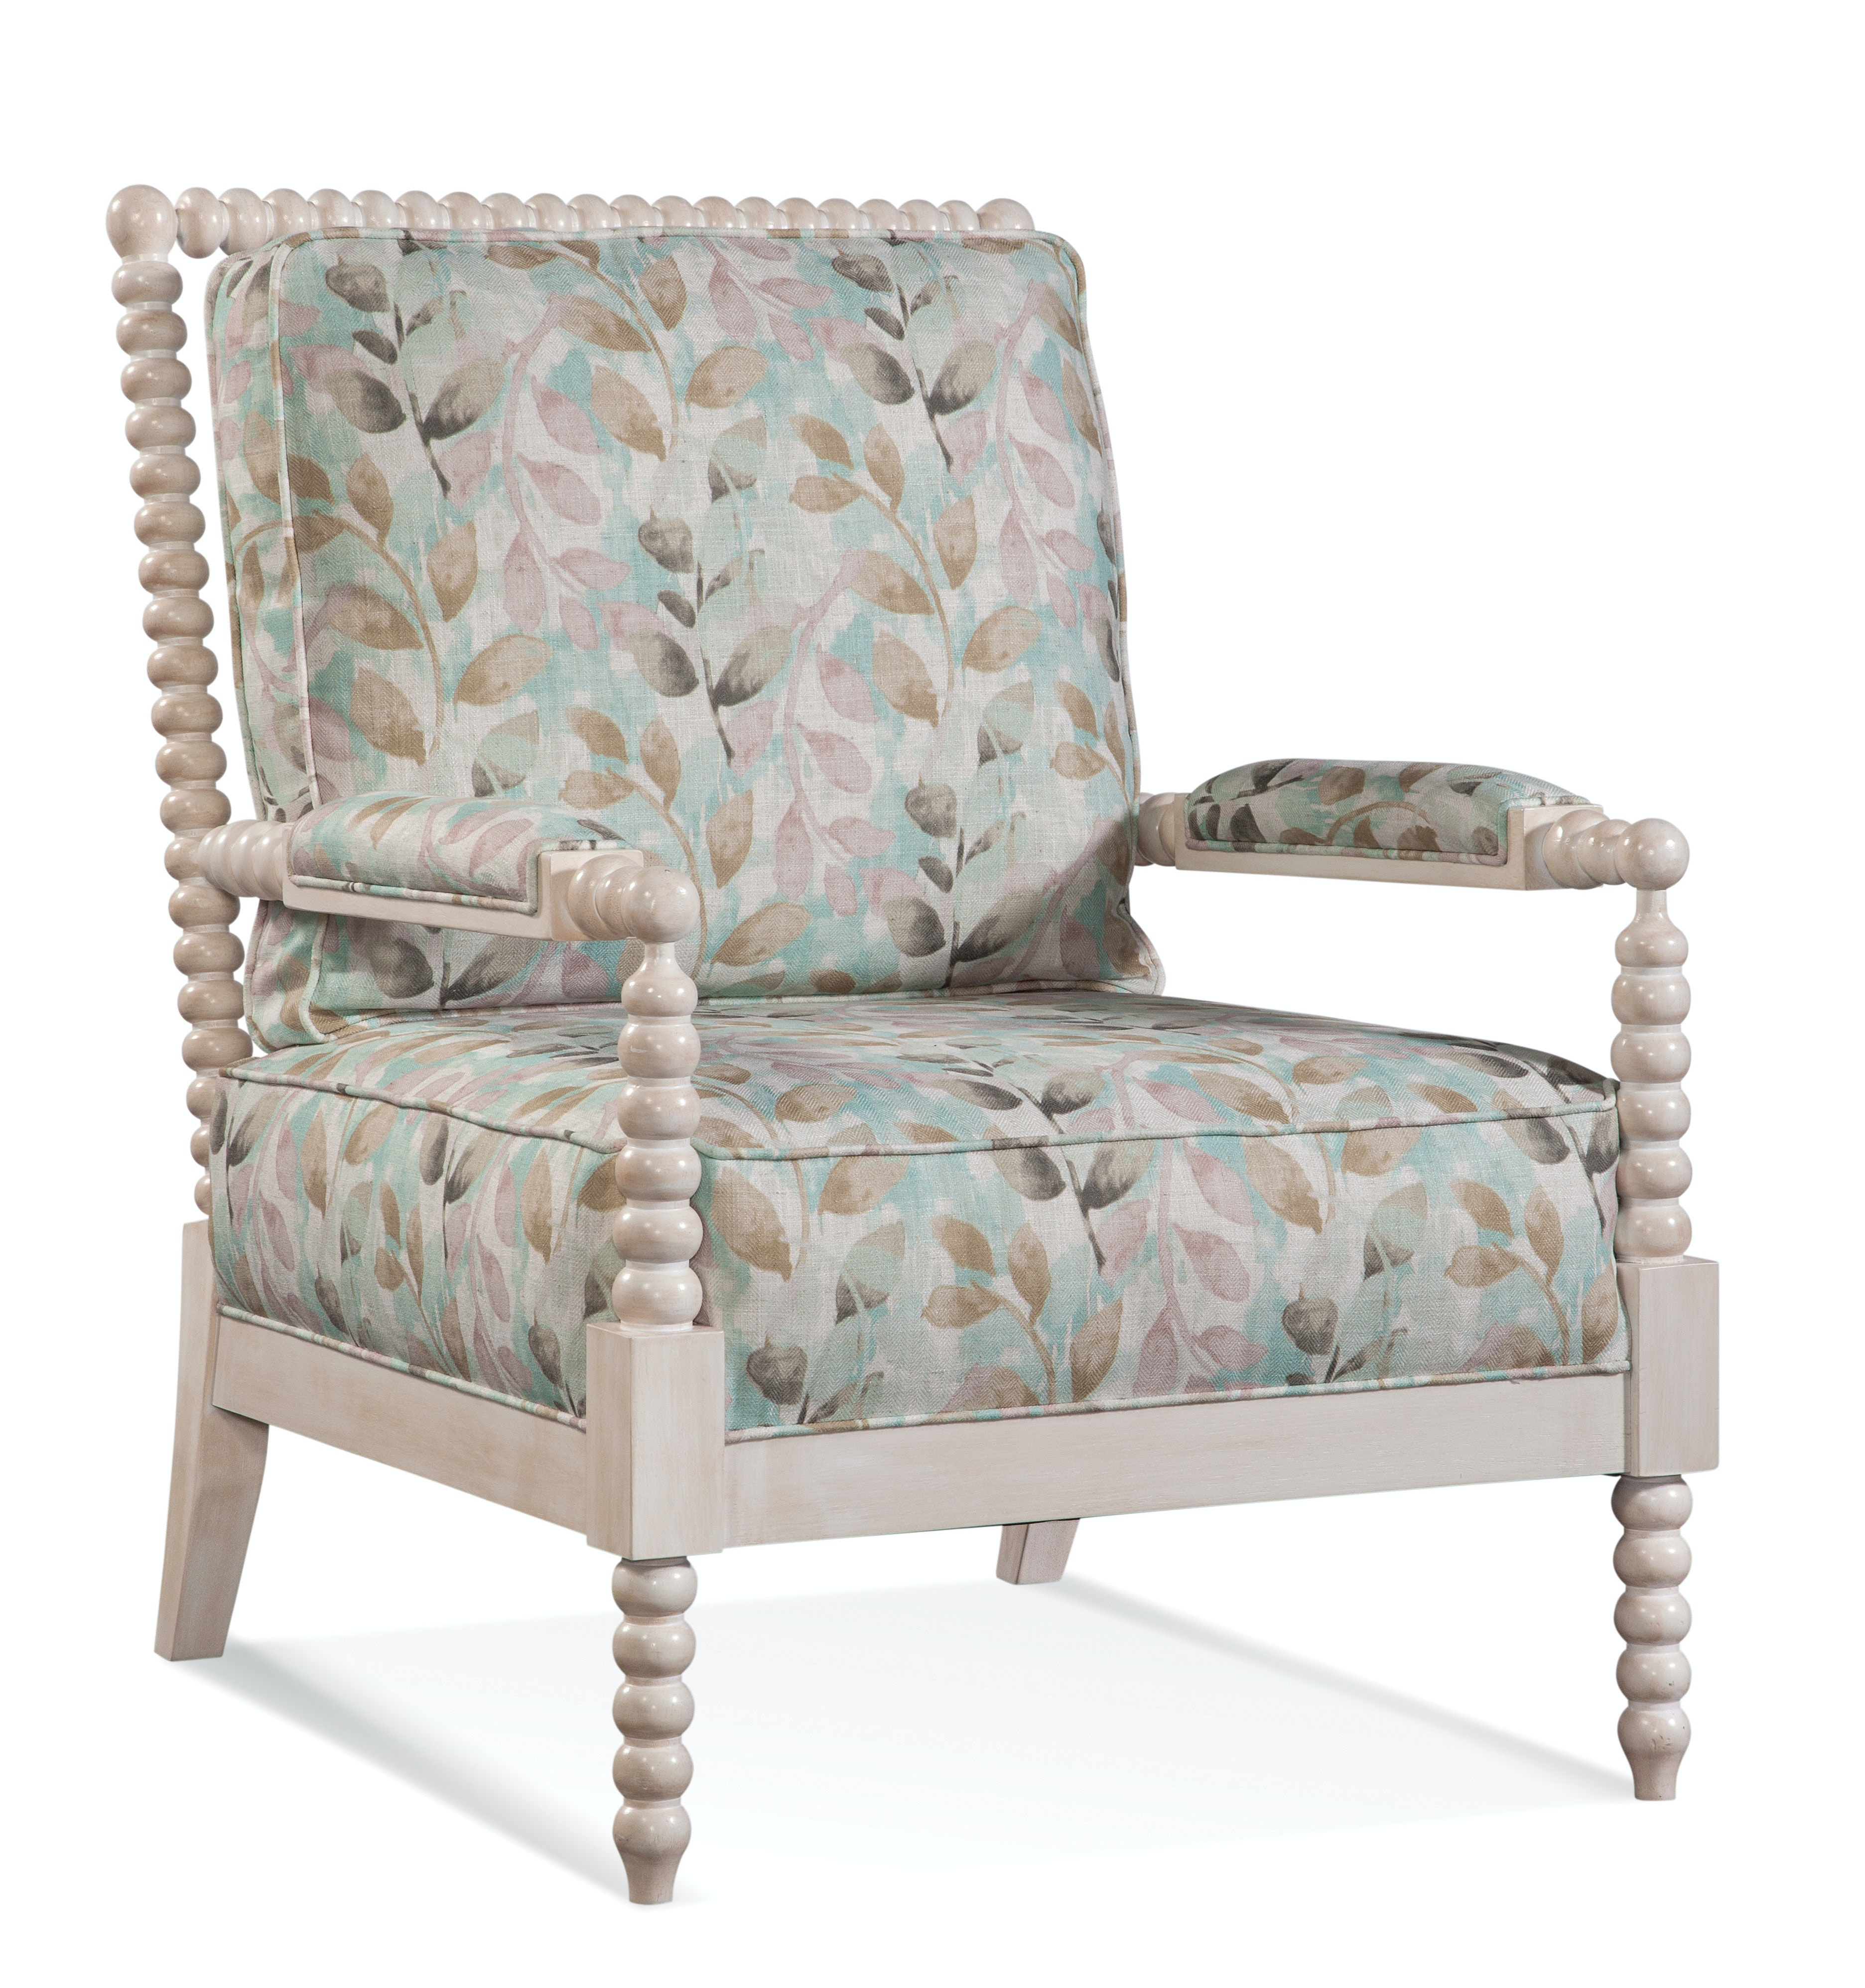 turquoise lounge chair ikea childrens poang braxton culler living room lind island 1046 001